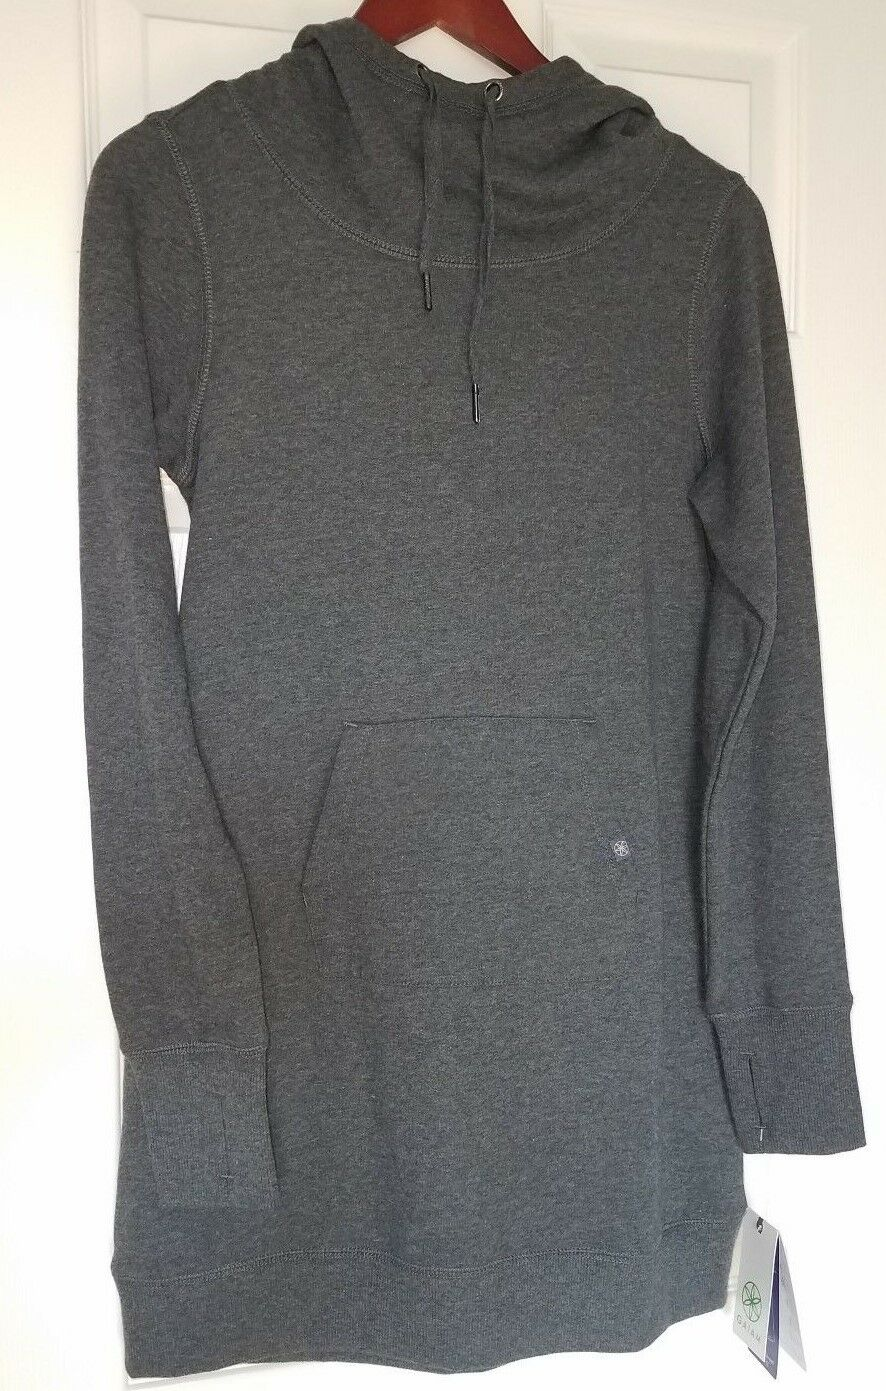 New GAIAM Women Bliss Fleece Yoga Dress Sweater Charcoal Heather Grey XS